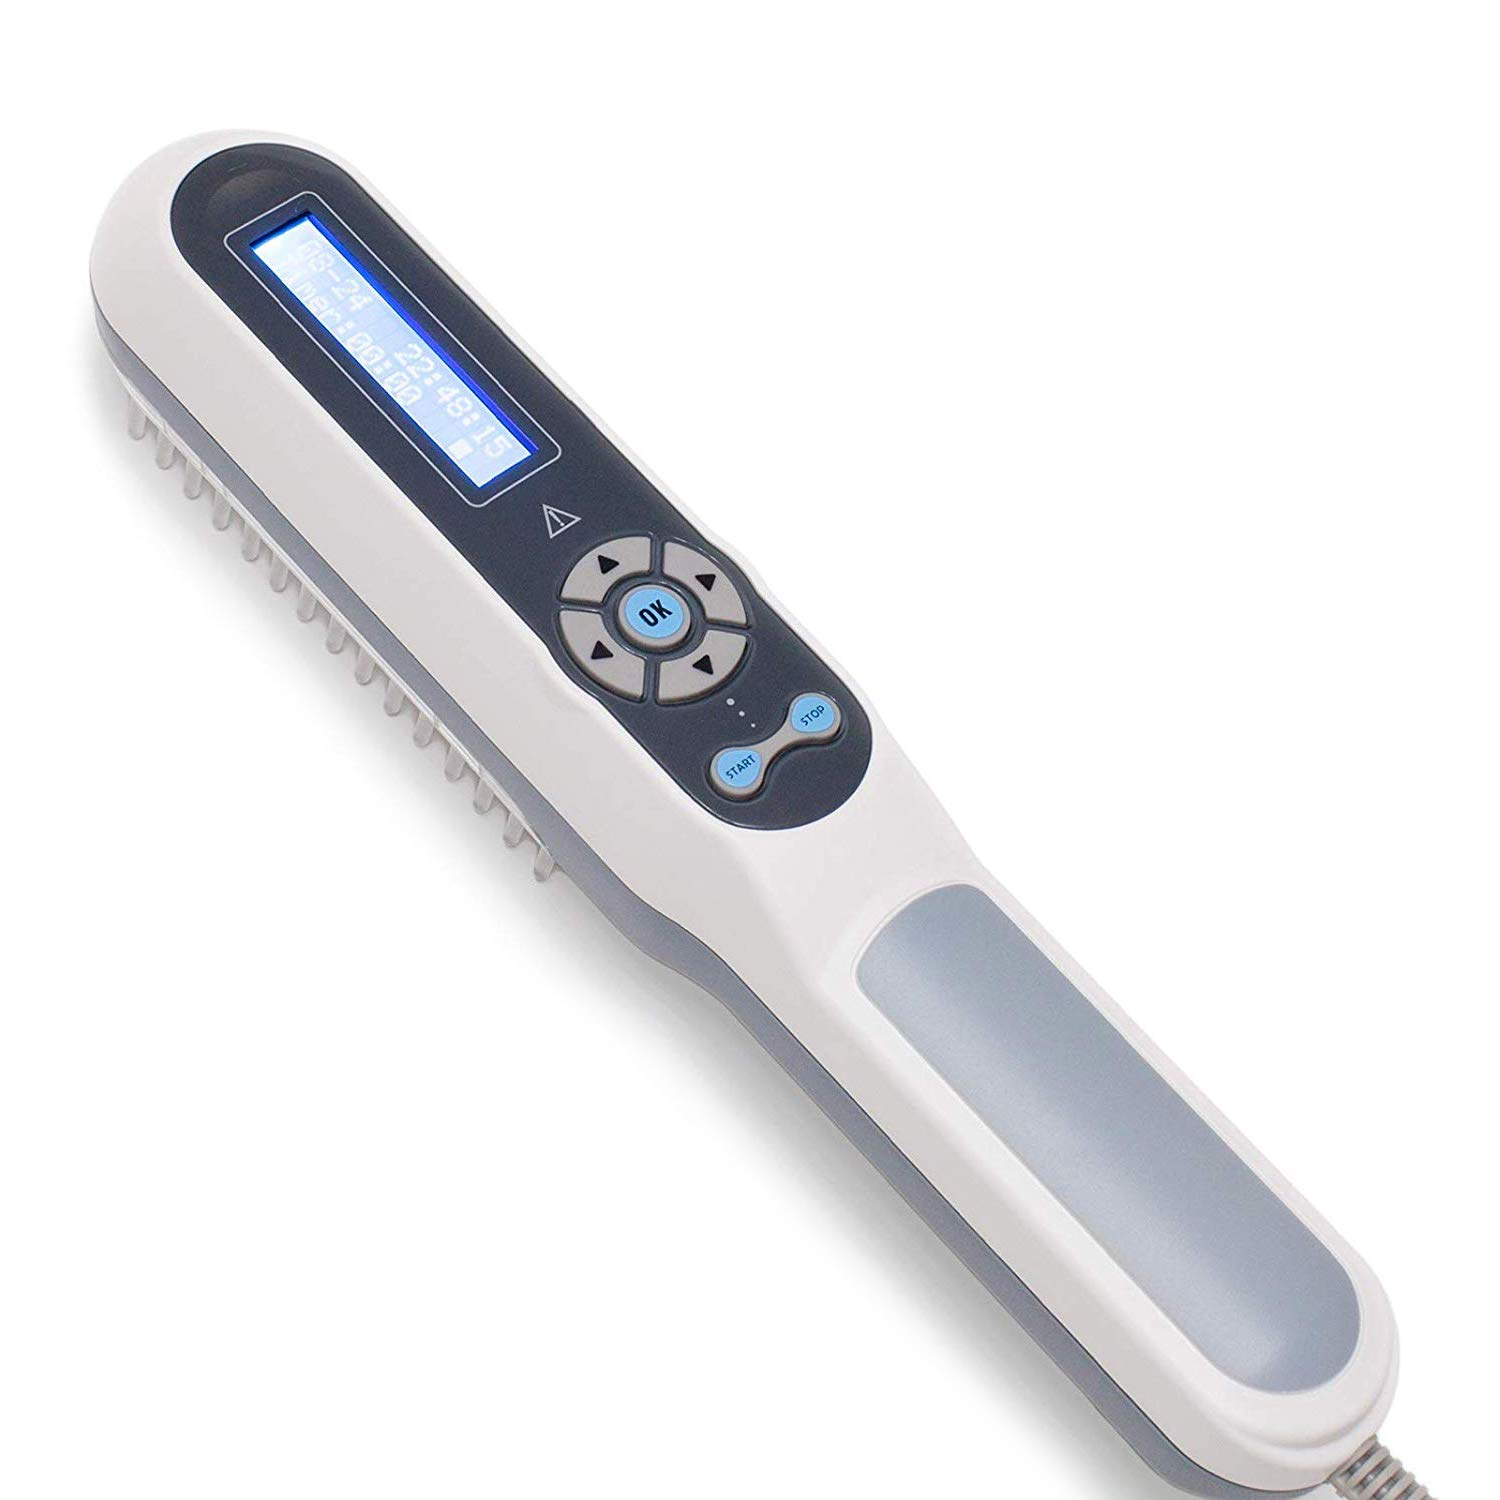 FDA Approved Hand-held UVB Light Therapy Home Phototherapy for Skin Disorders Treatment by Teenvix